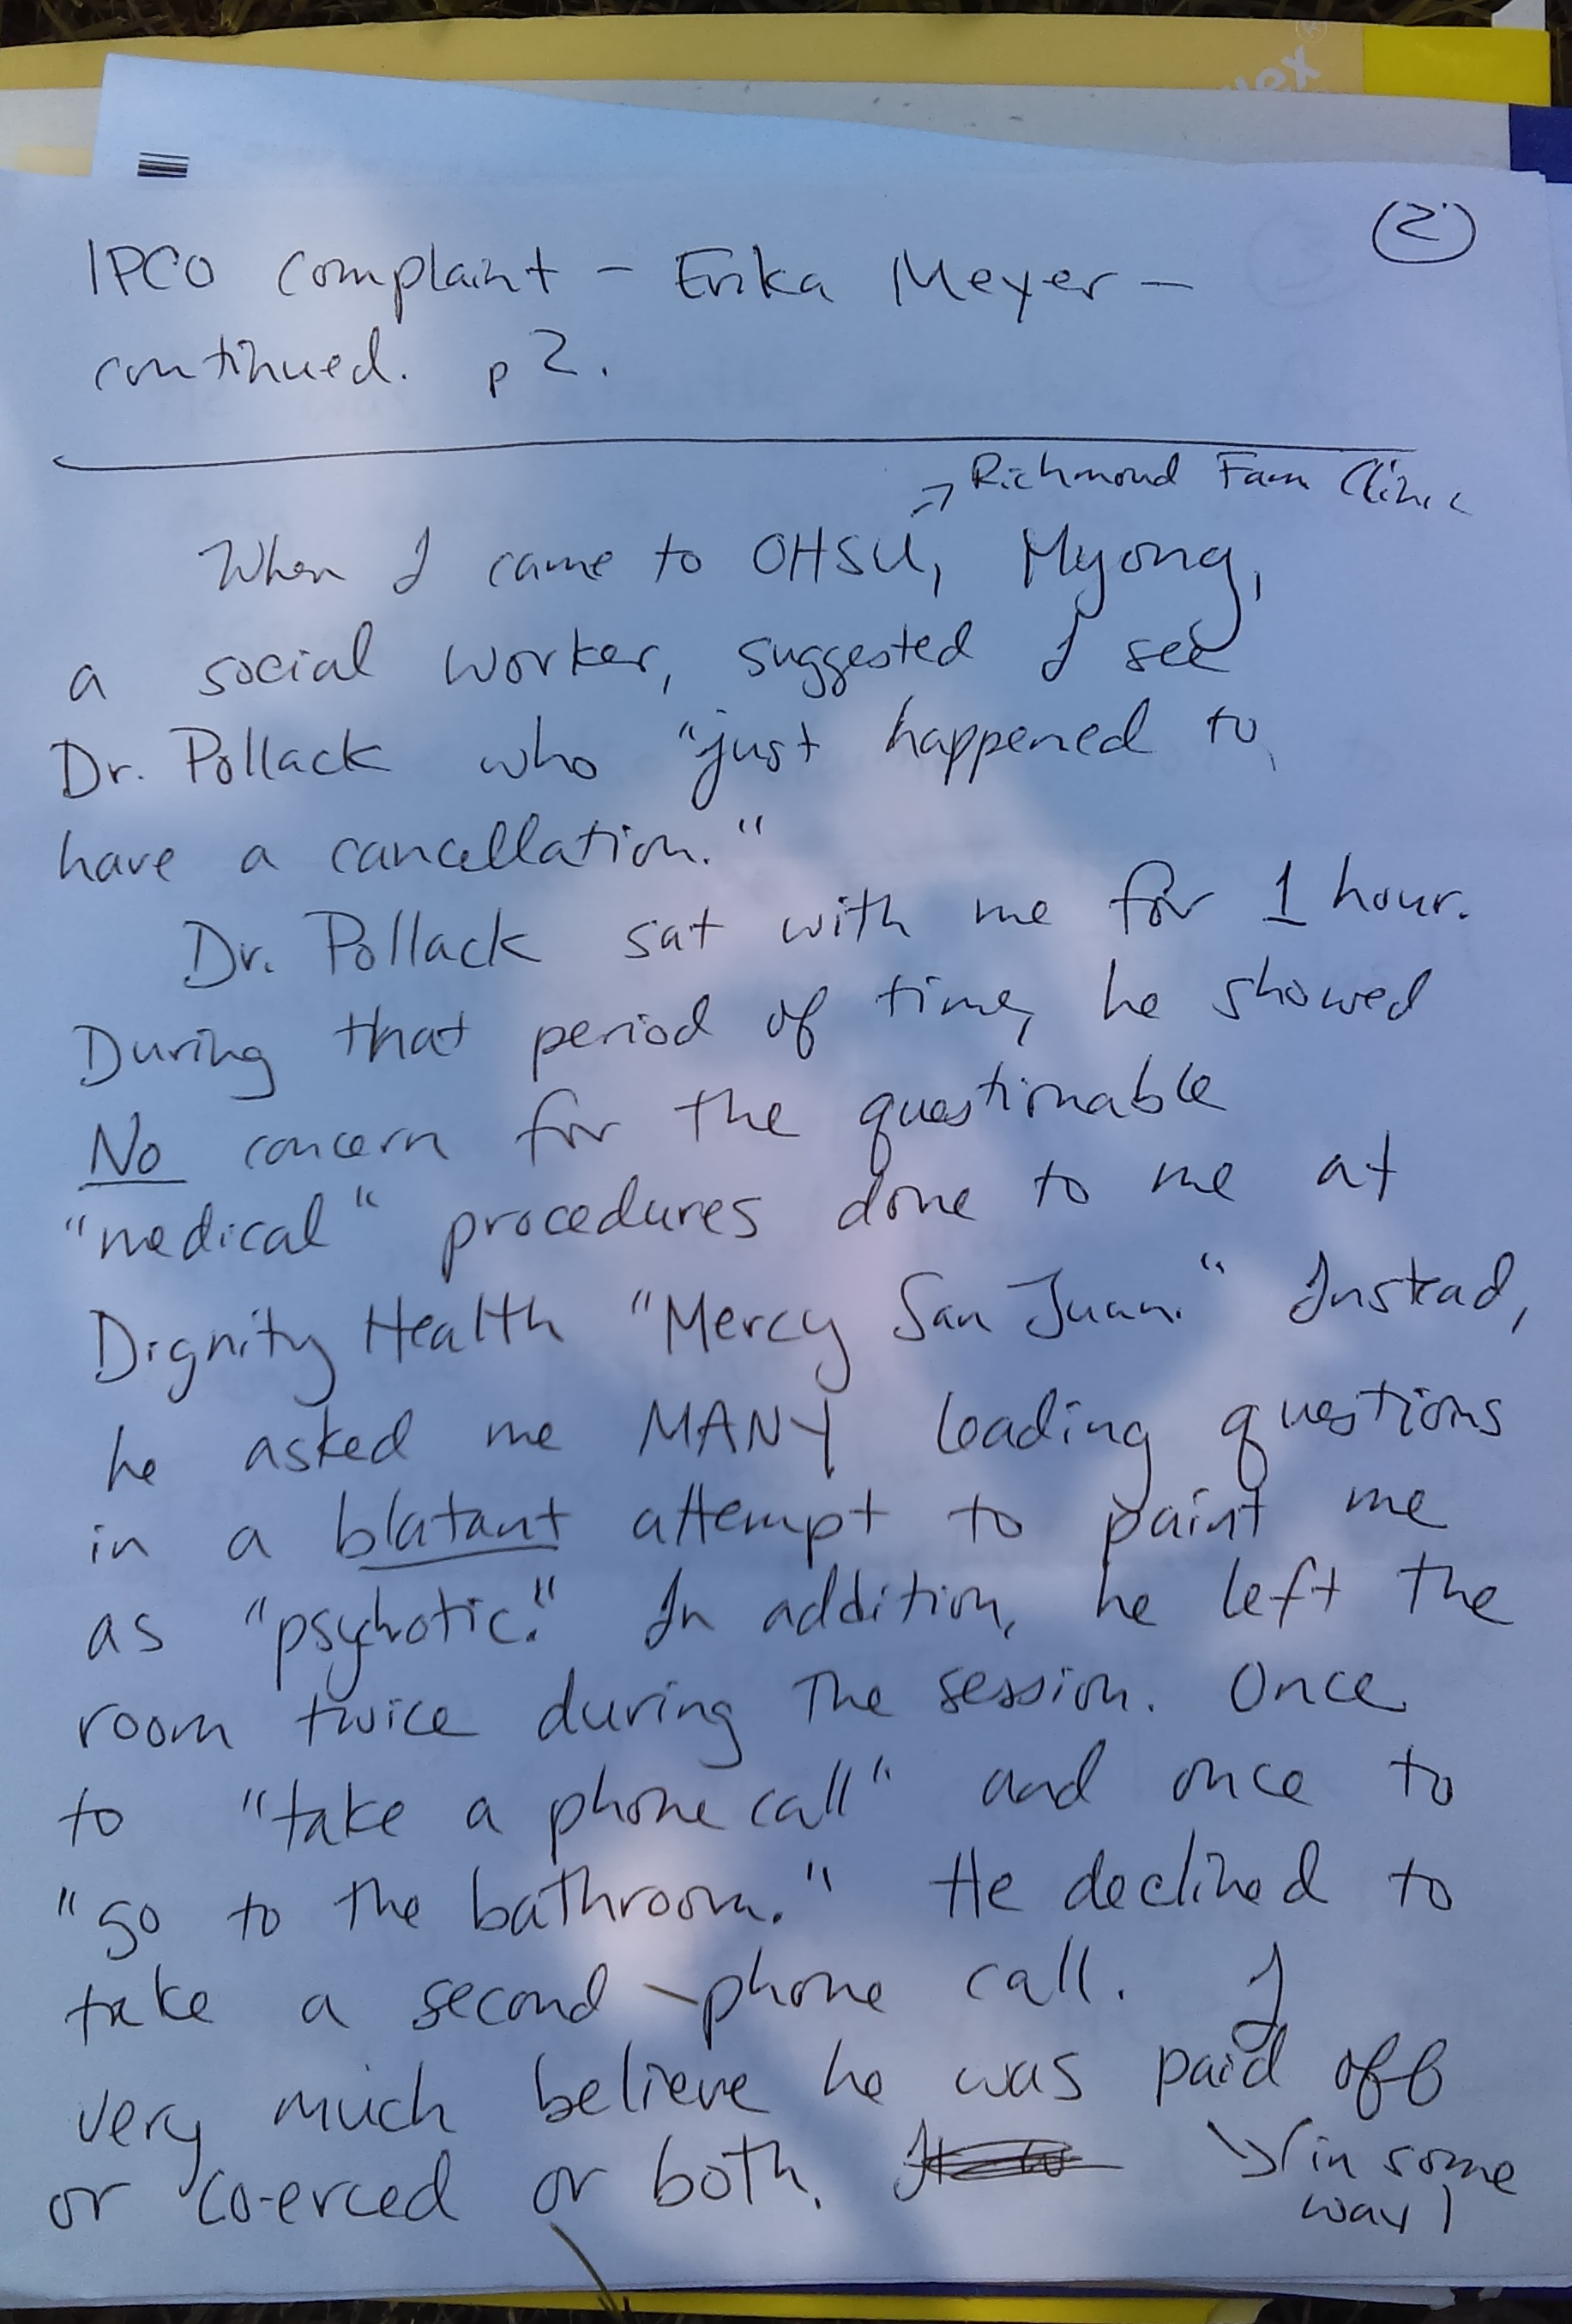 6-13-2014 complaint file with OHSU about Dr Pollack page 2